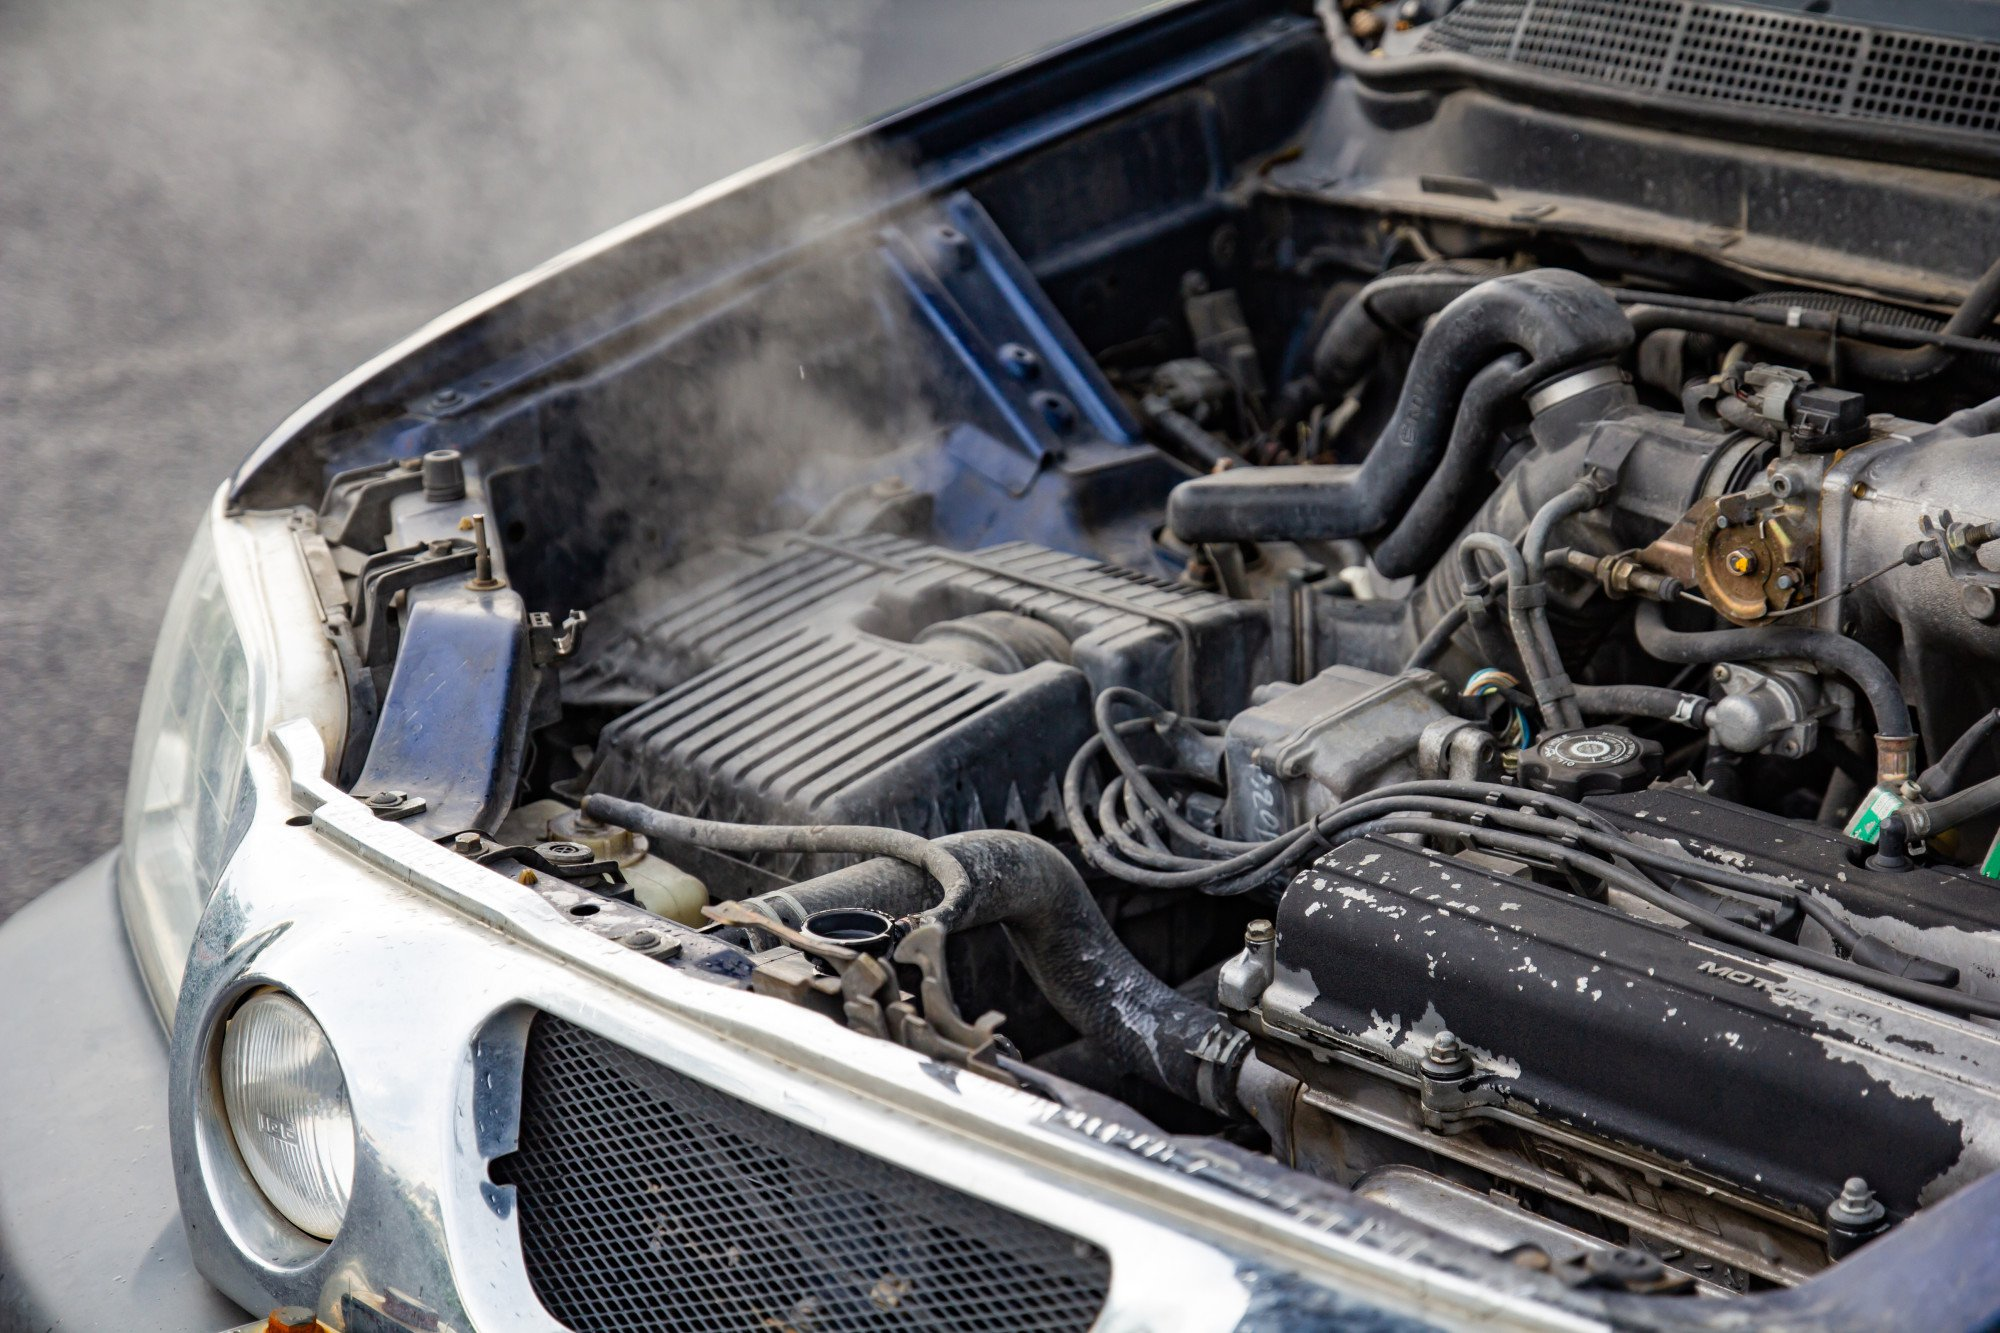 Does Your Car Have a Blown Engine? Here's What to Do